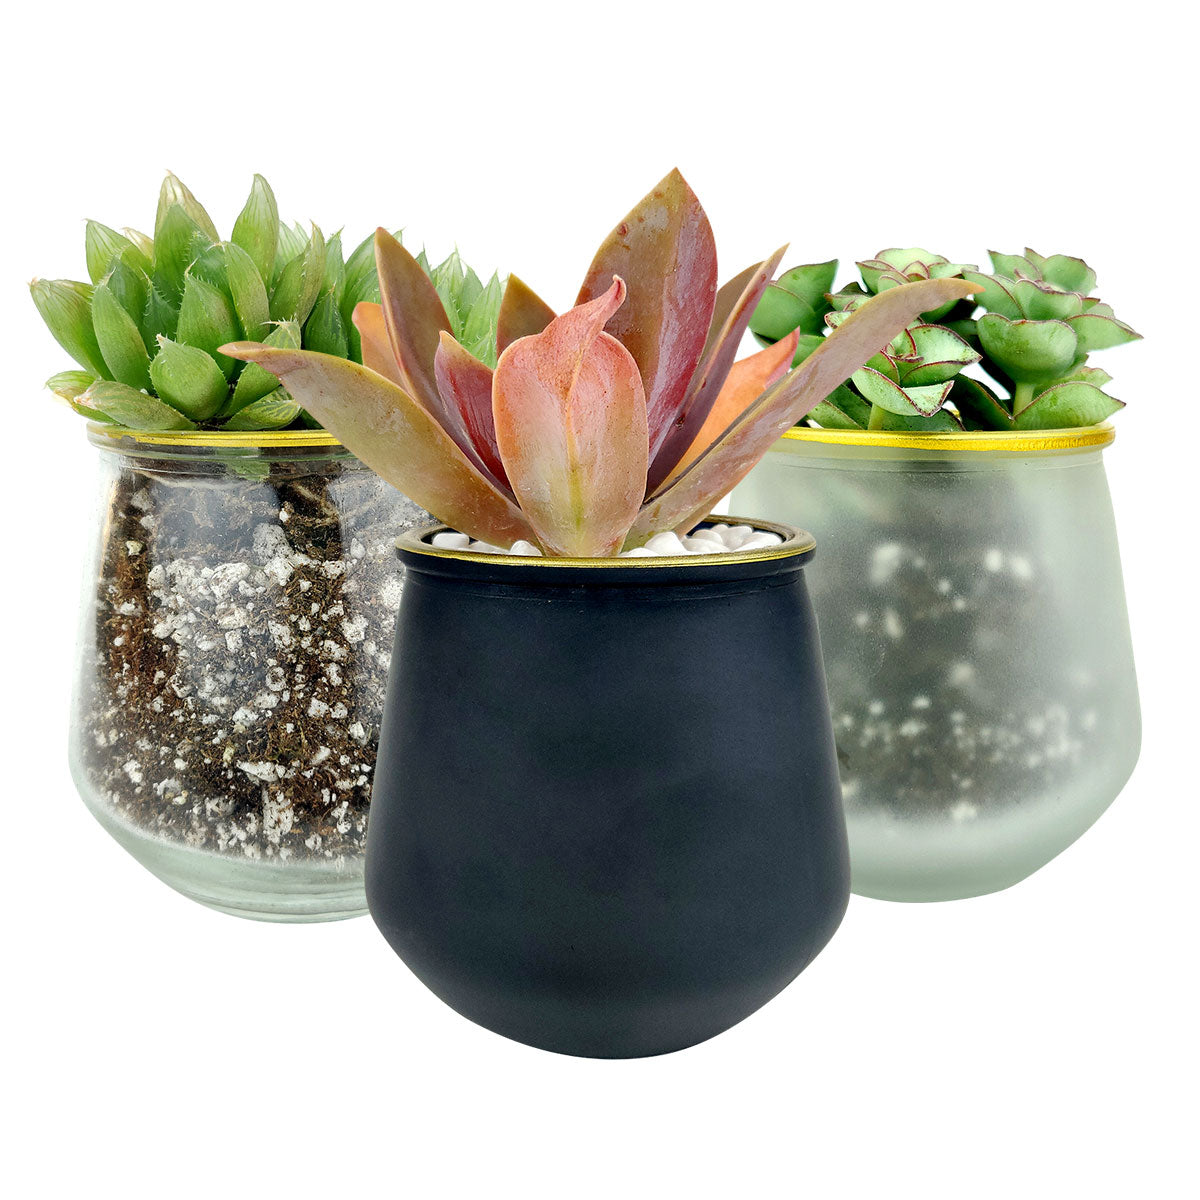 Pot for sale, Mini pot for succulent, Succulent pot decor ideas, 3 Pack Gold Rim Pots, Flower pot for sale, glass pots for planting, succulent gift for holiday